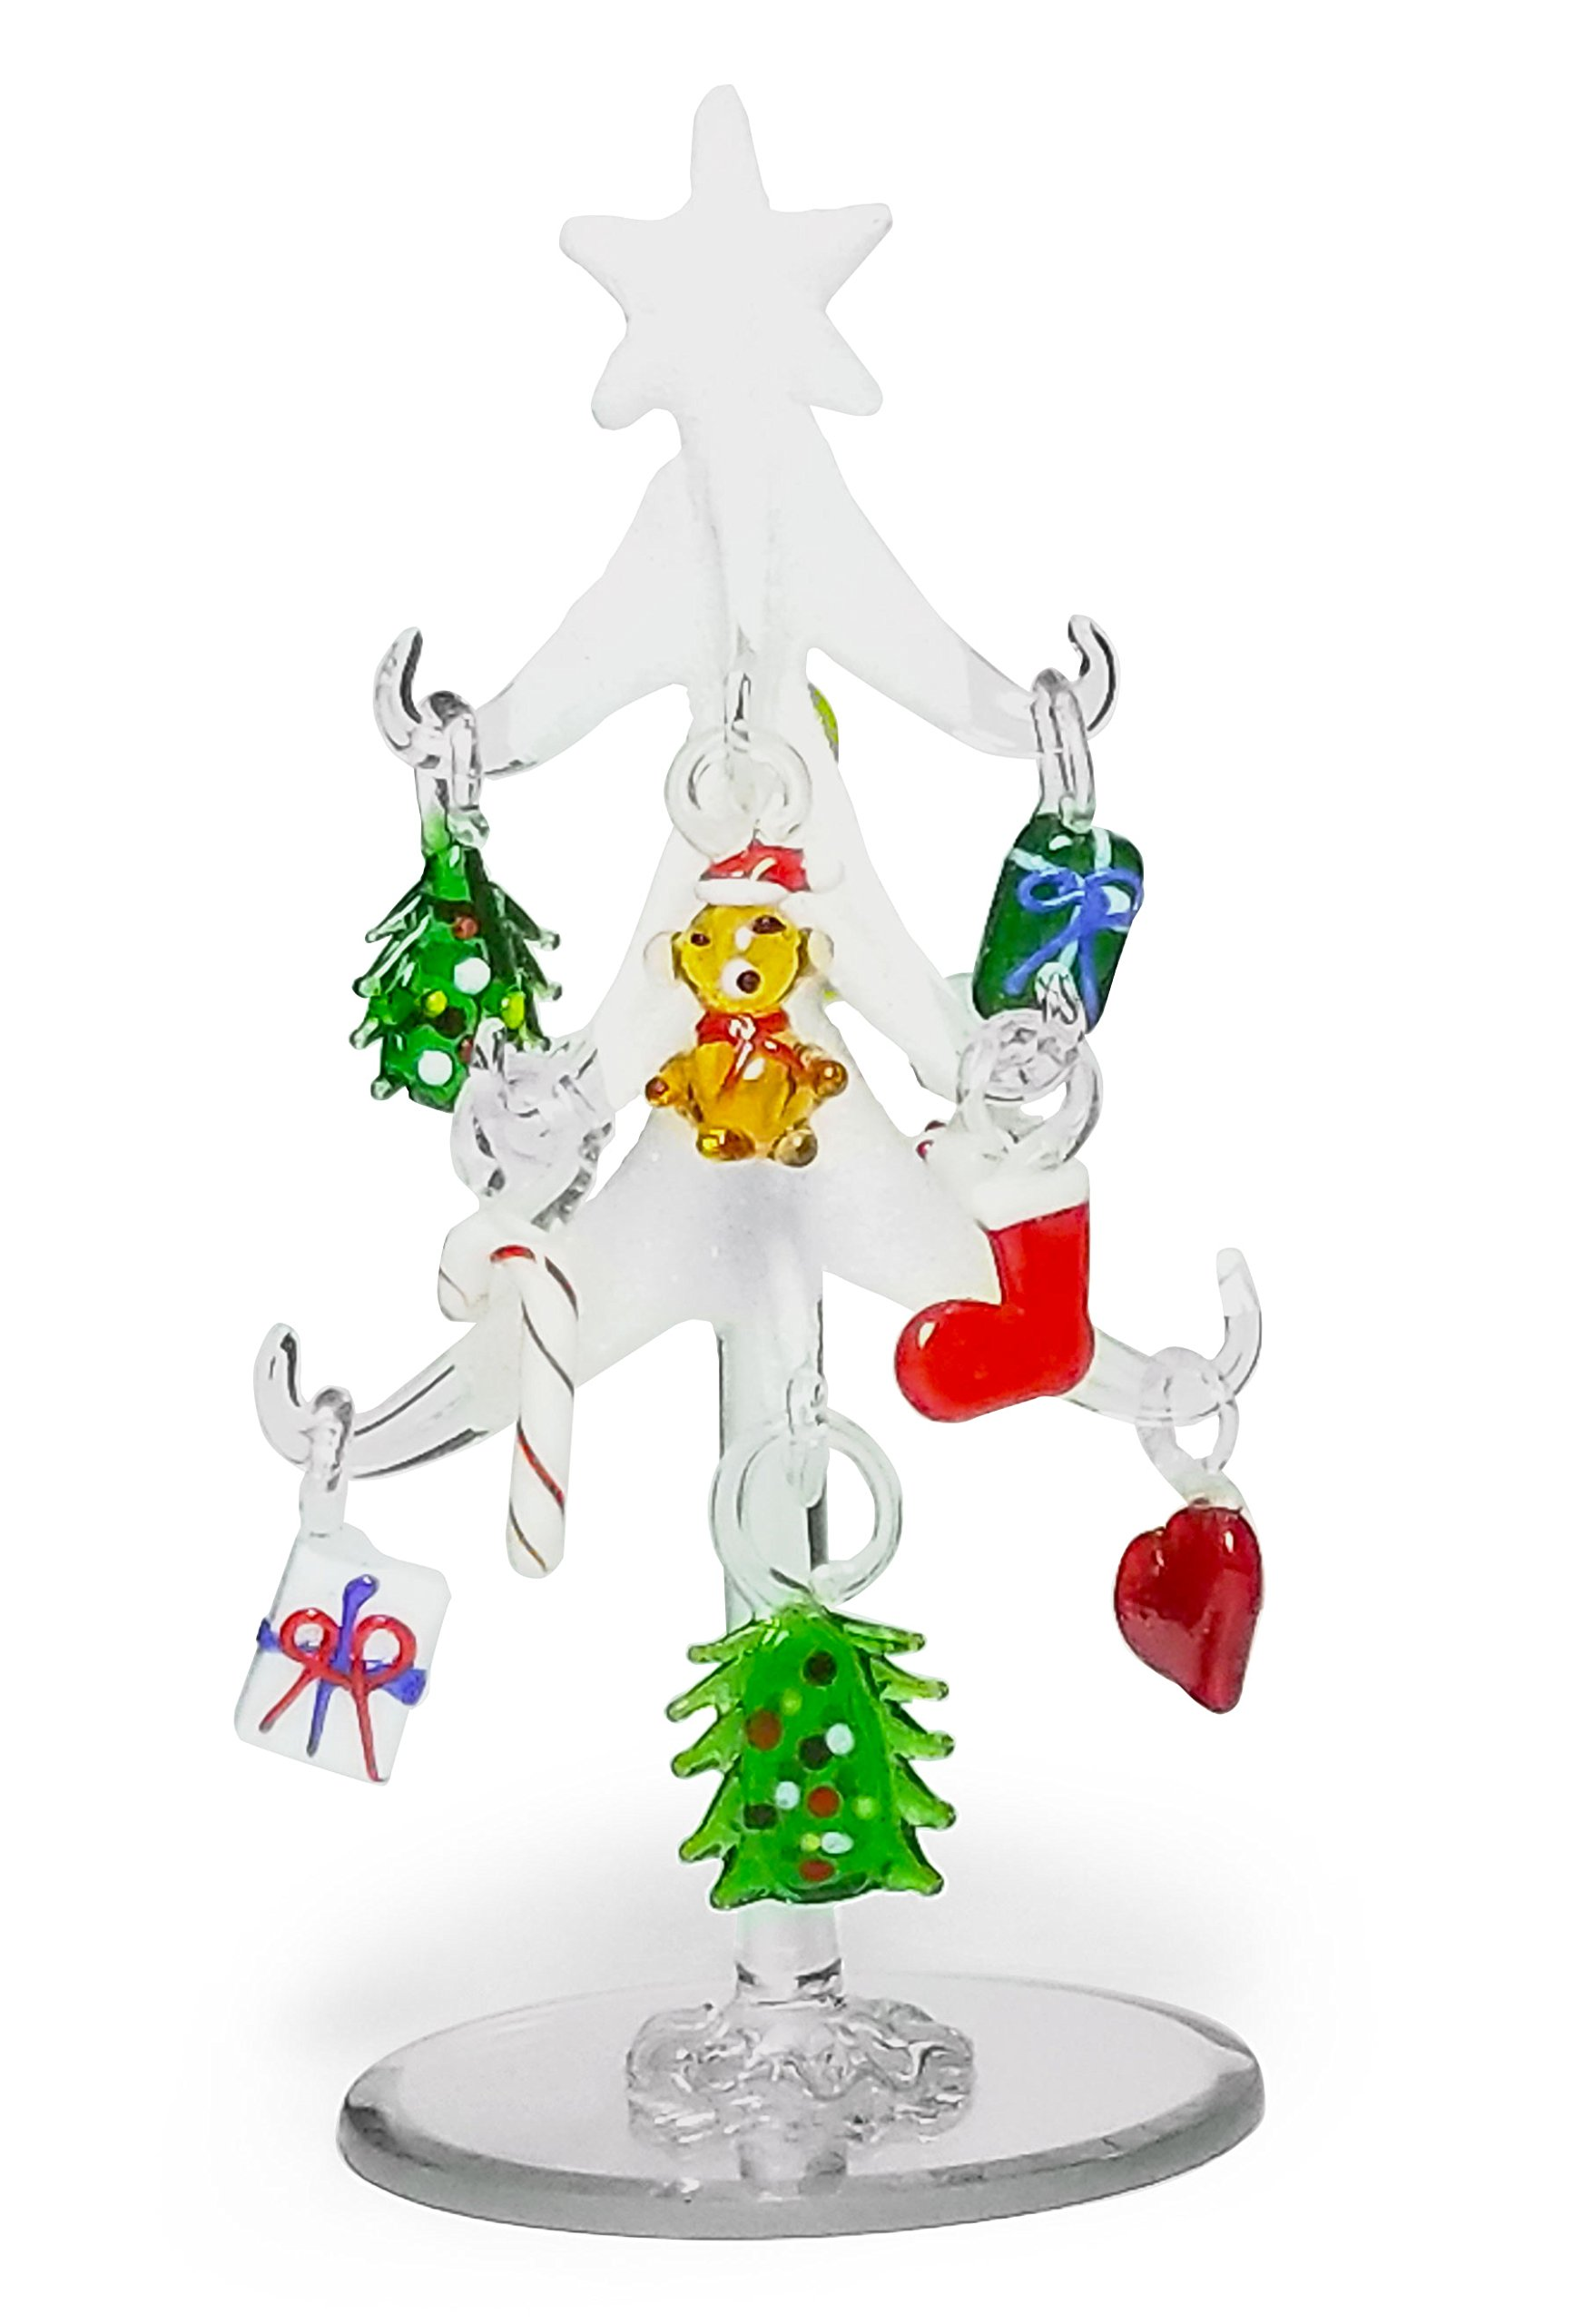 Glass Christmas Tree - Frosted Glass Tree with 10 Colorful Glass Ornaments - 6'' Tall Tabletop Decorated Xmas Tree